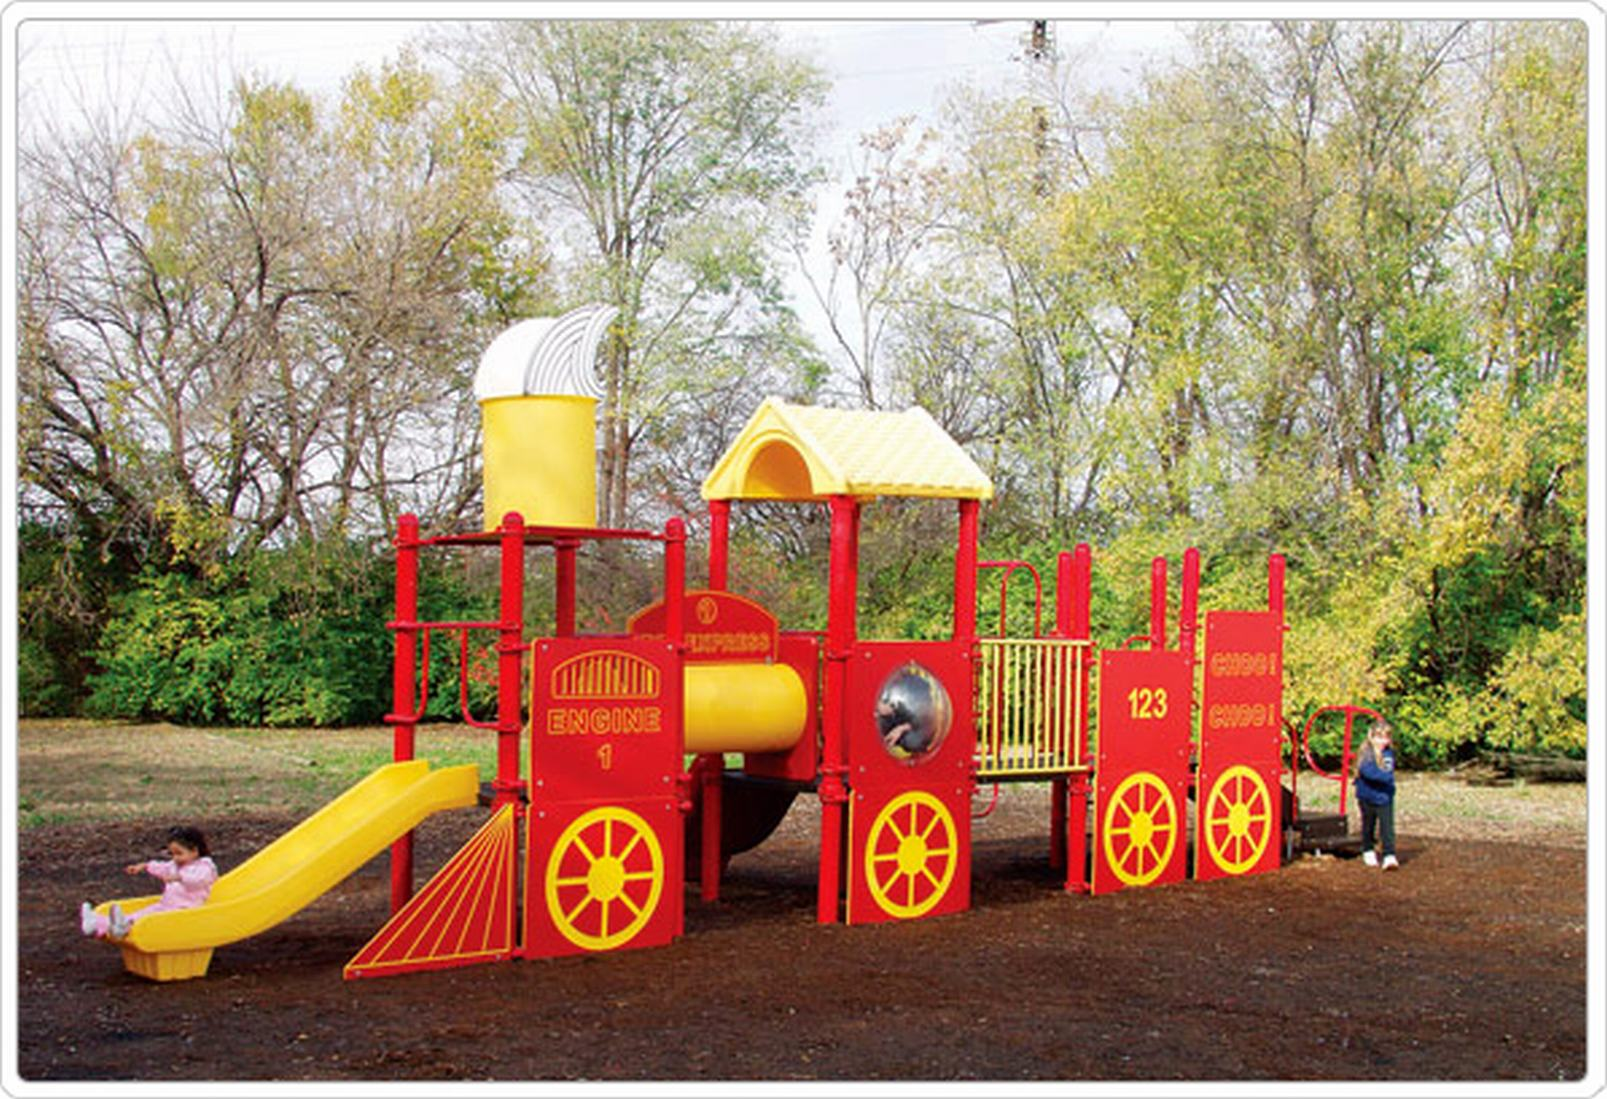 Home Depot Play Equipment : Playground train jr educator s depot